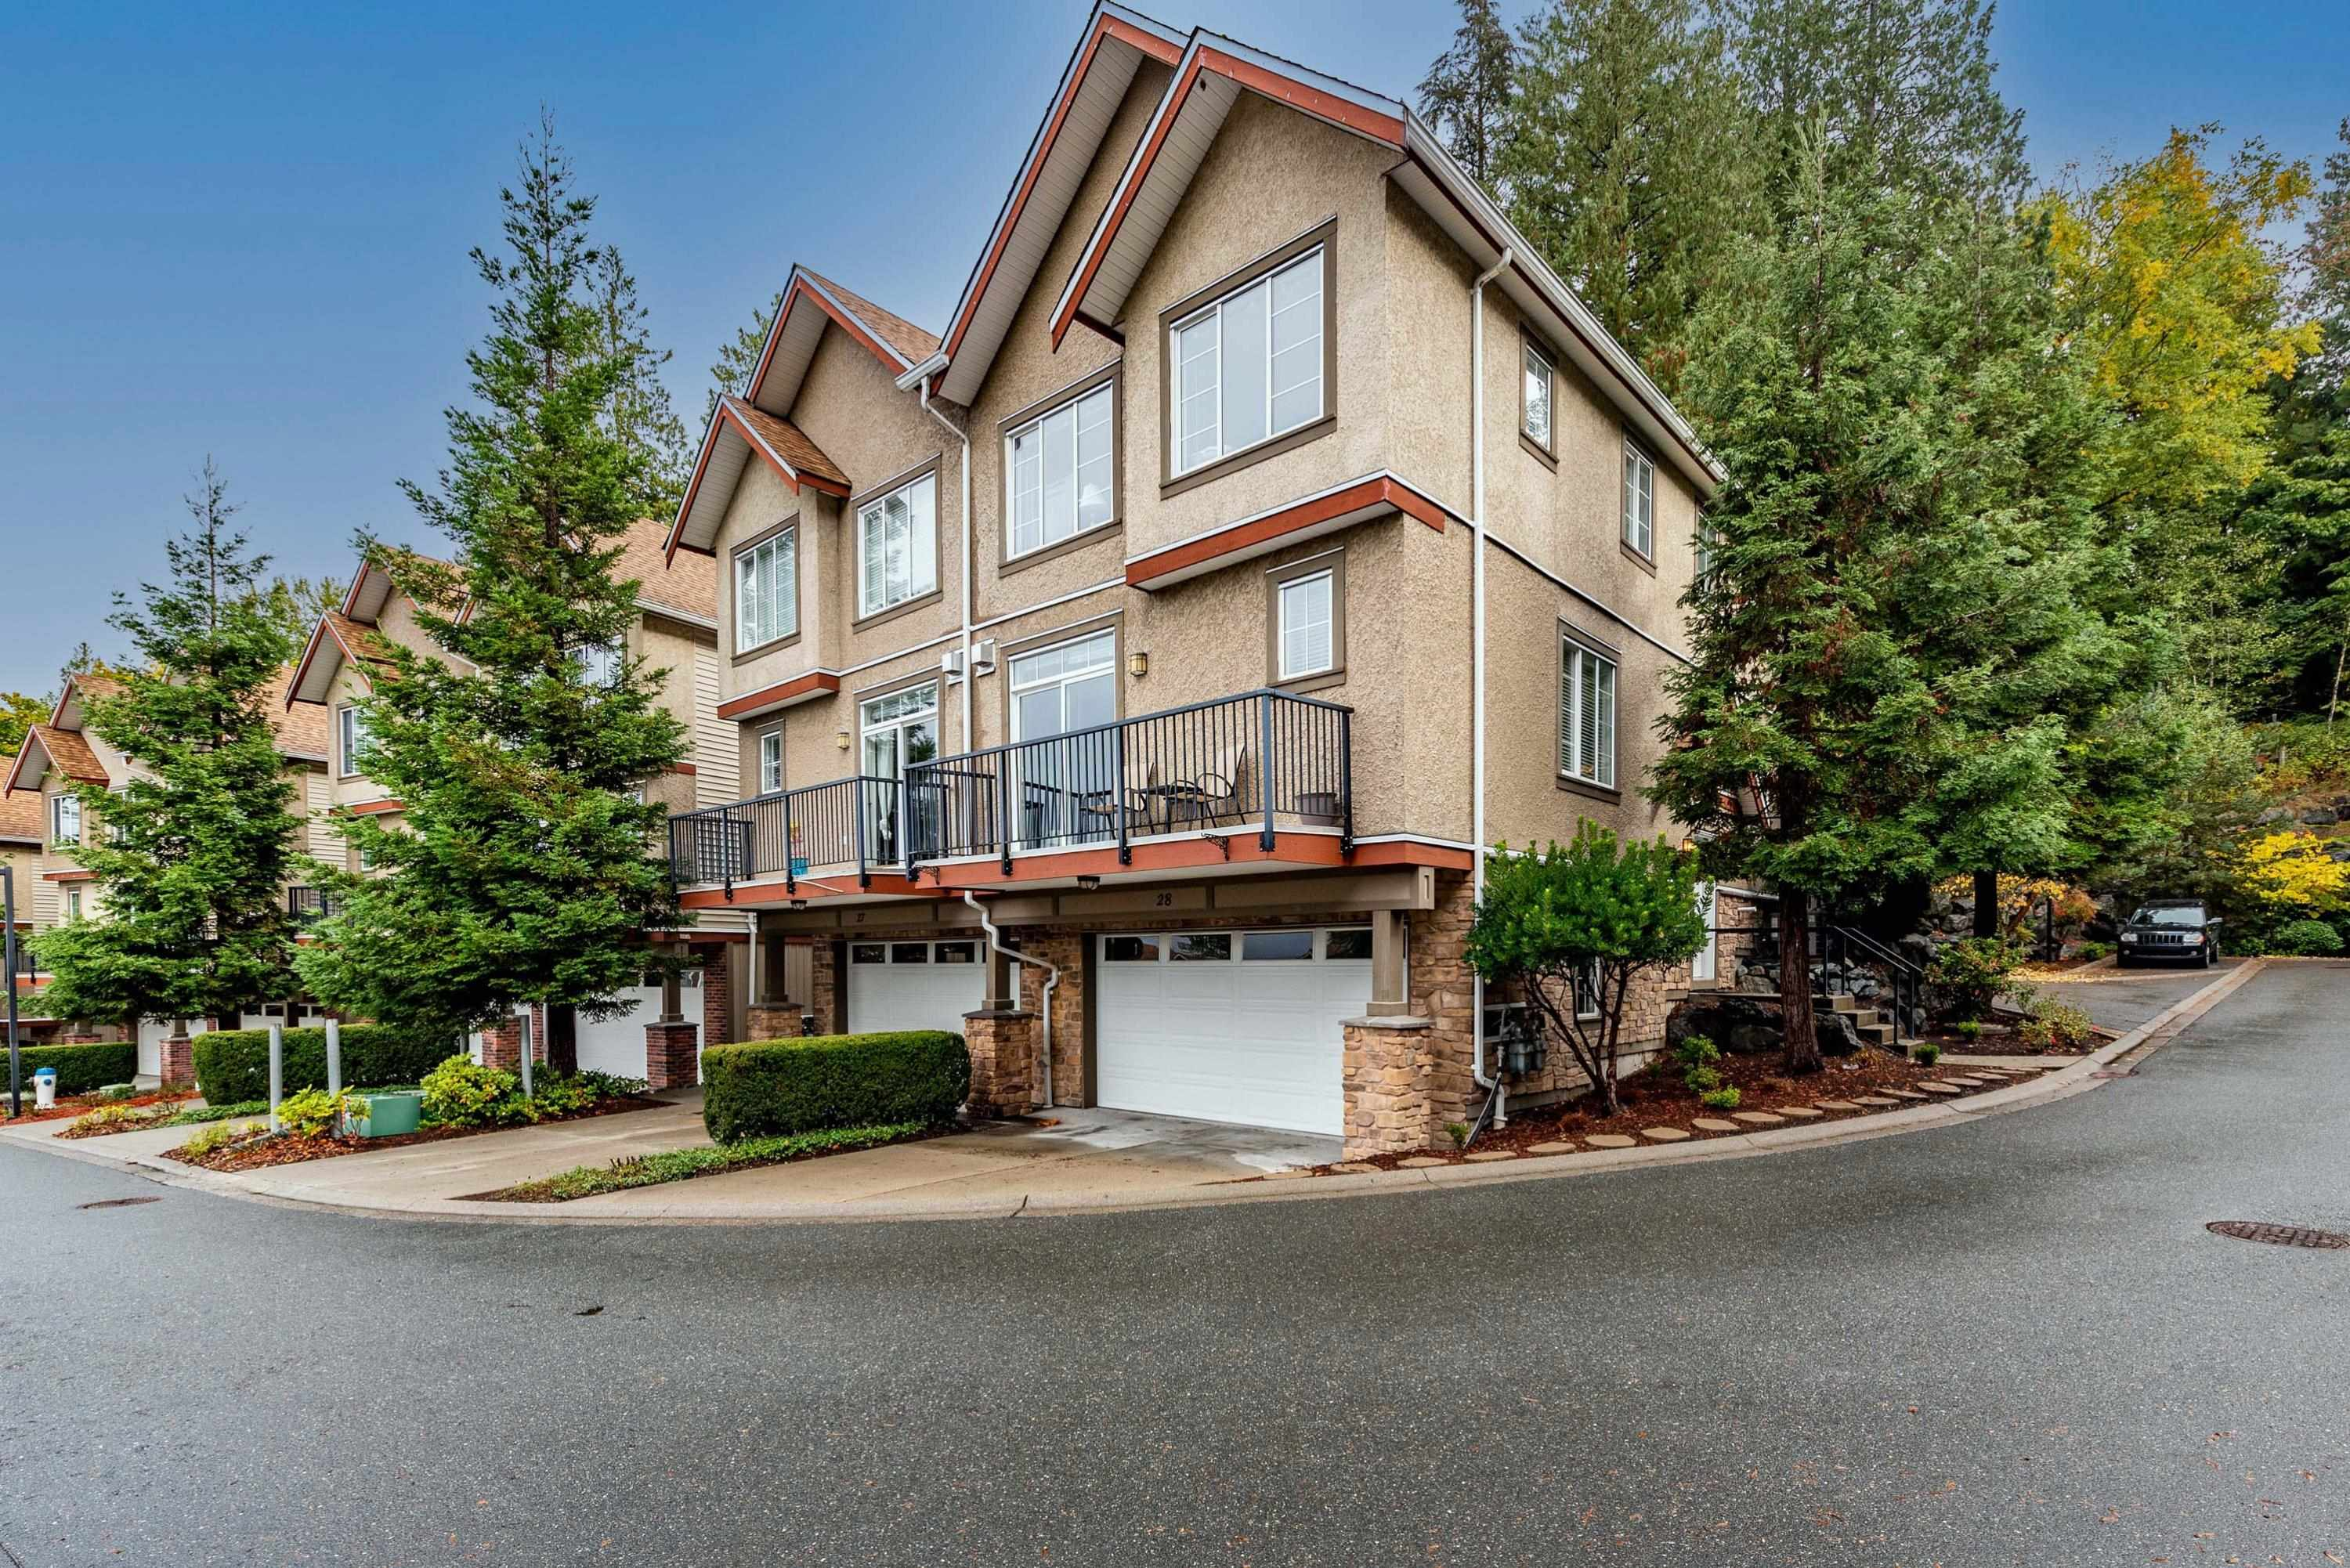 28 35626 MCKEE ROAD - Abbotsford East Townhouse for sale, 3 Bedrooms (R2626071) - #1